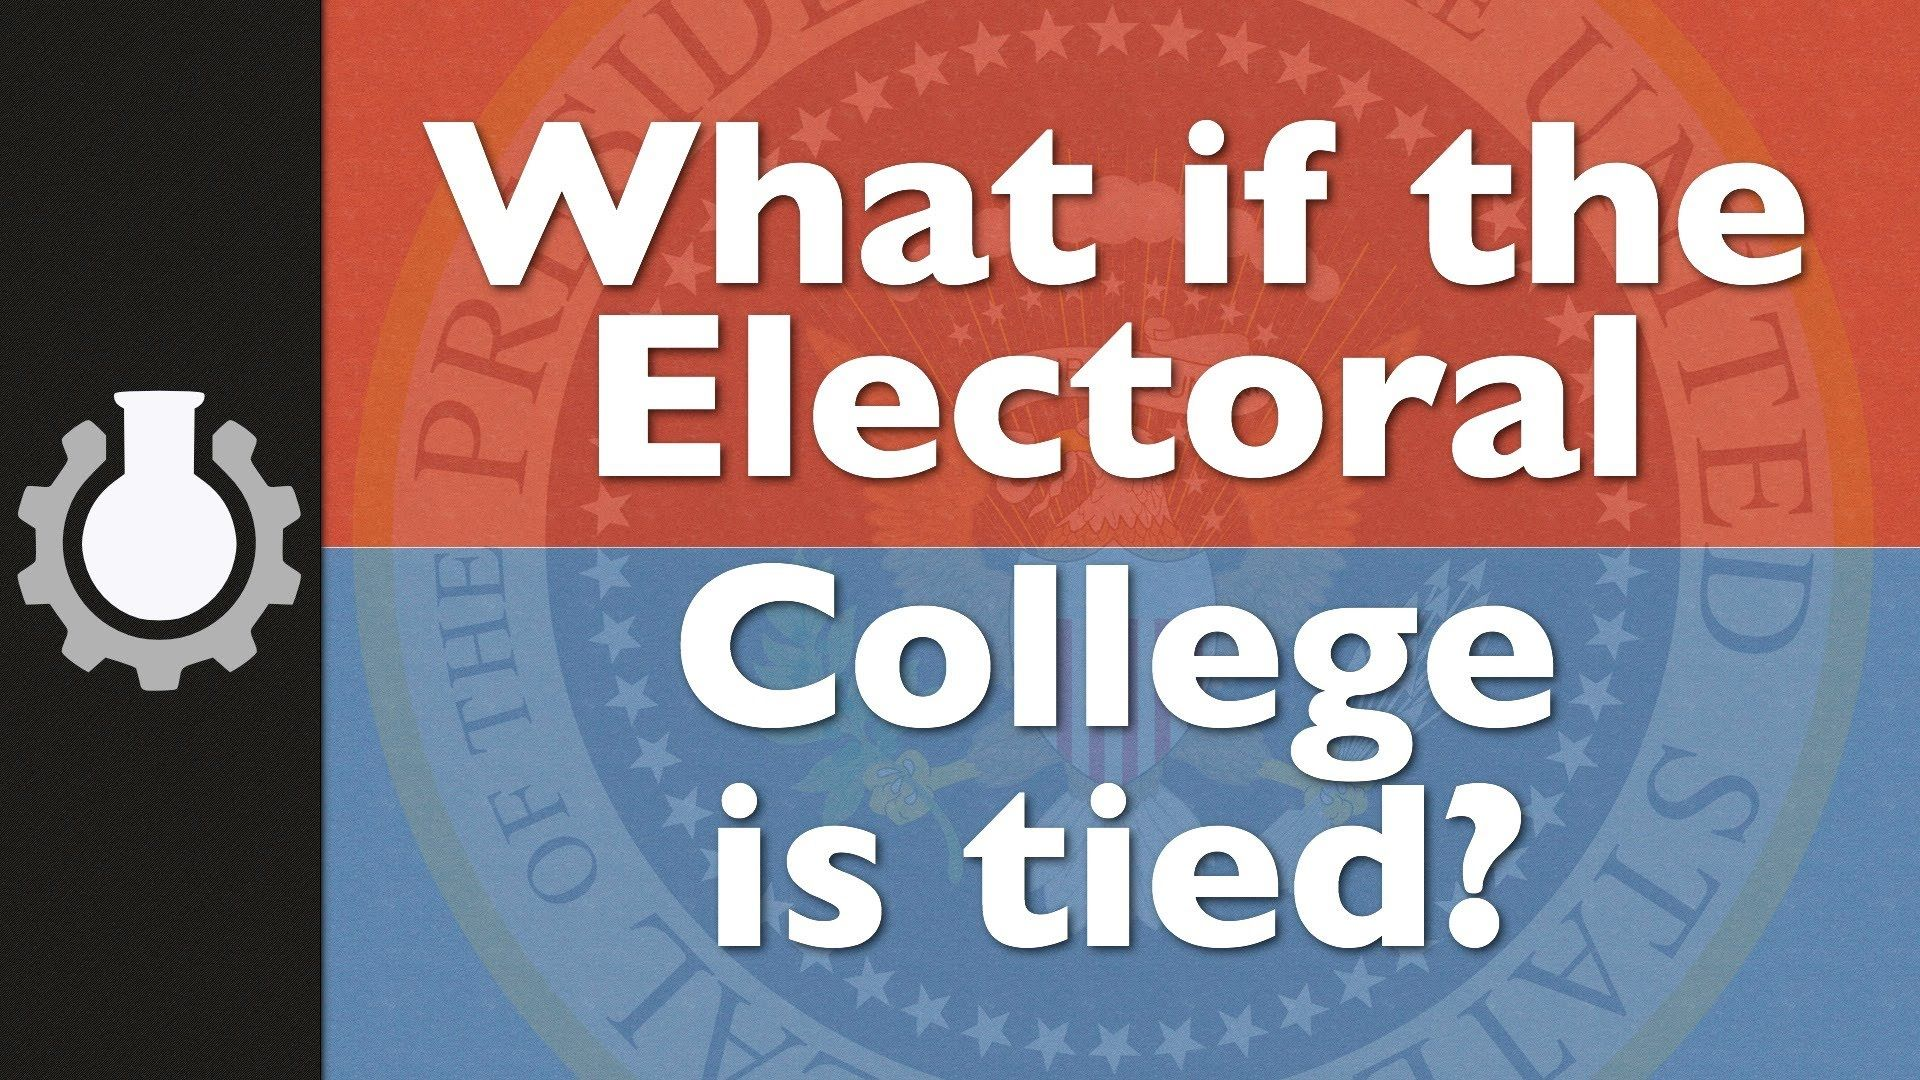 best ideas about the electoral college electoral 17 best ideas about the electoral college electoral college votes college works and government lessons